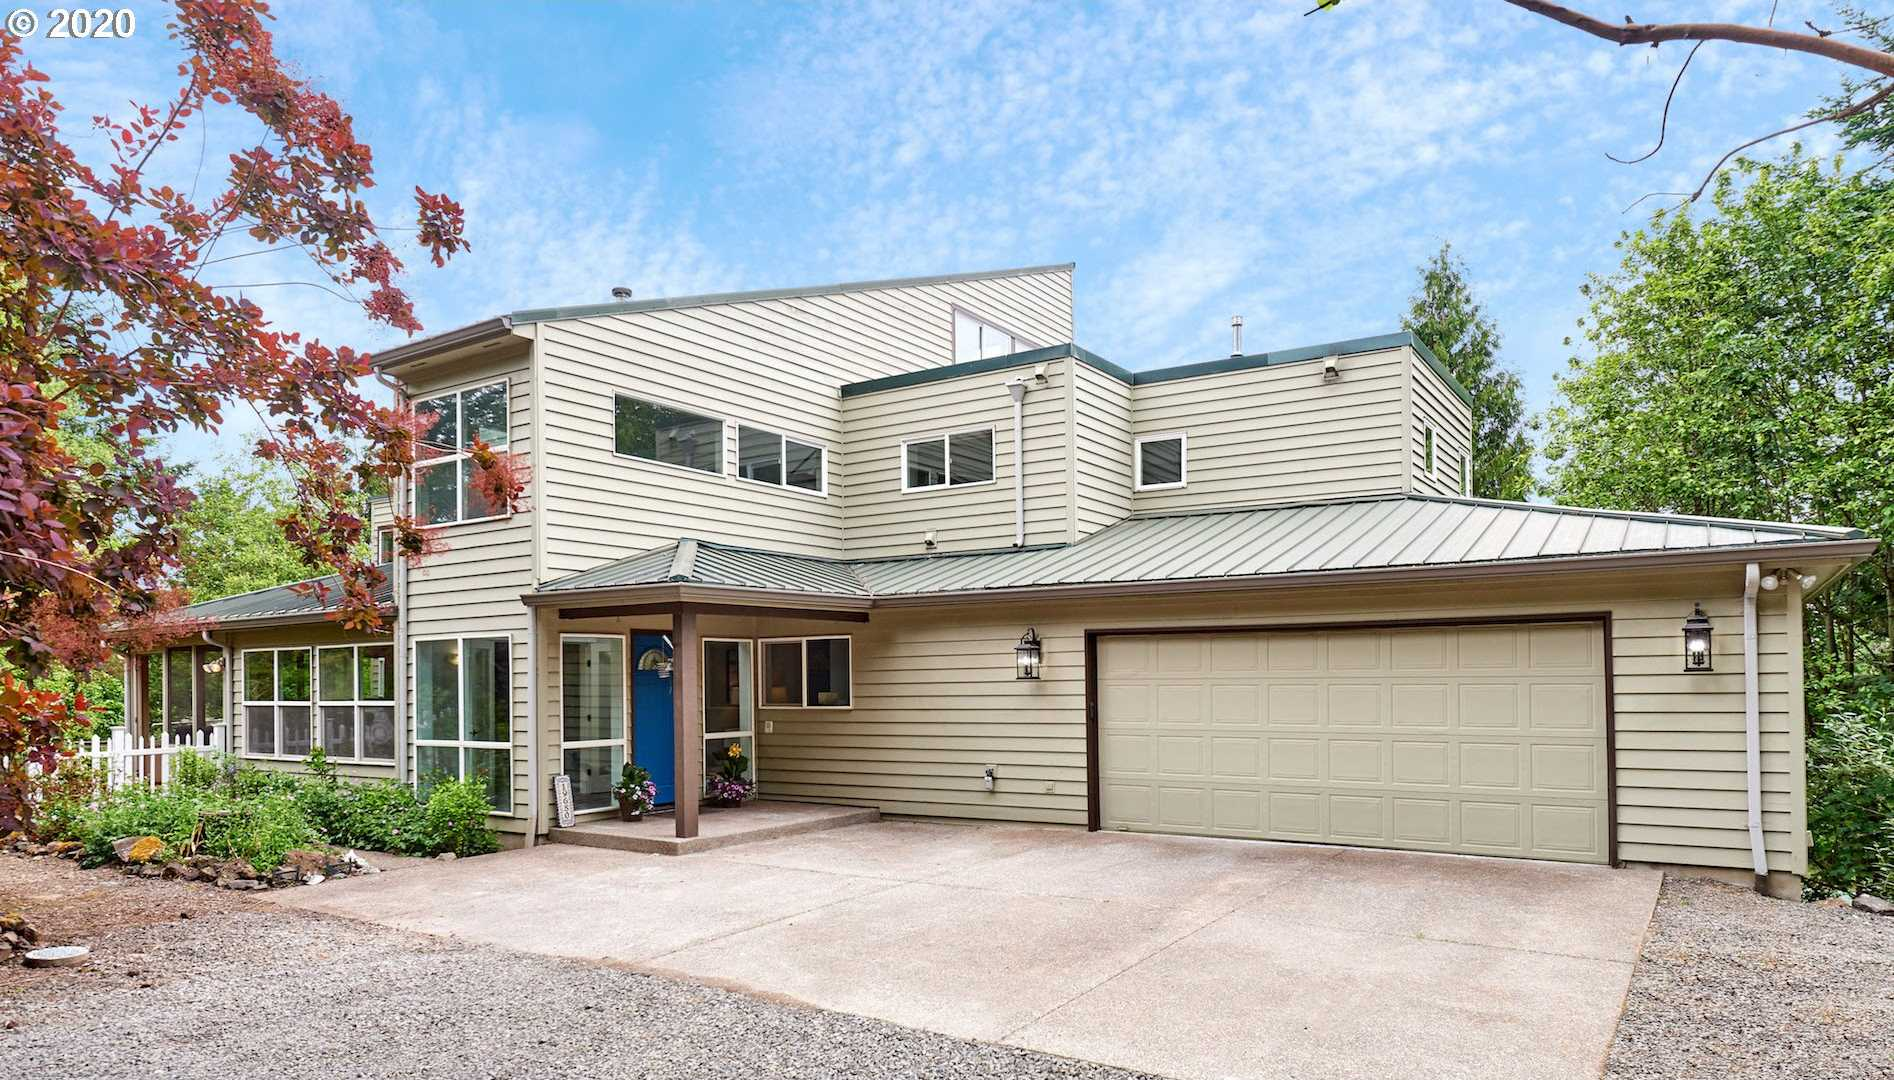 $1,049,000 - 5Br/5Ba -  for Sale in Scholls, Hillsboro